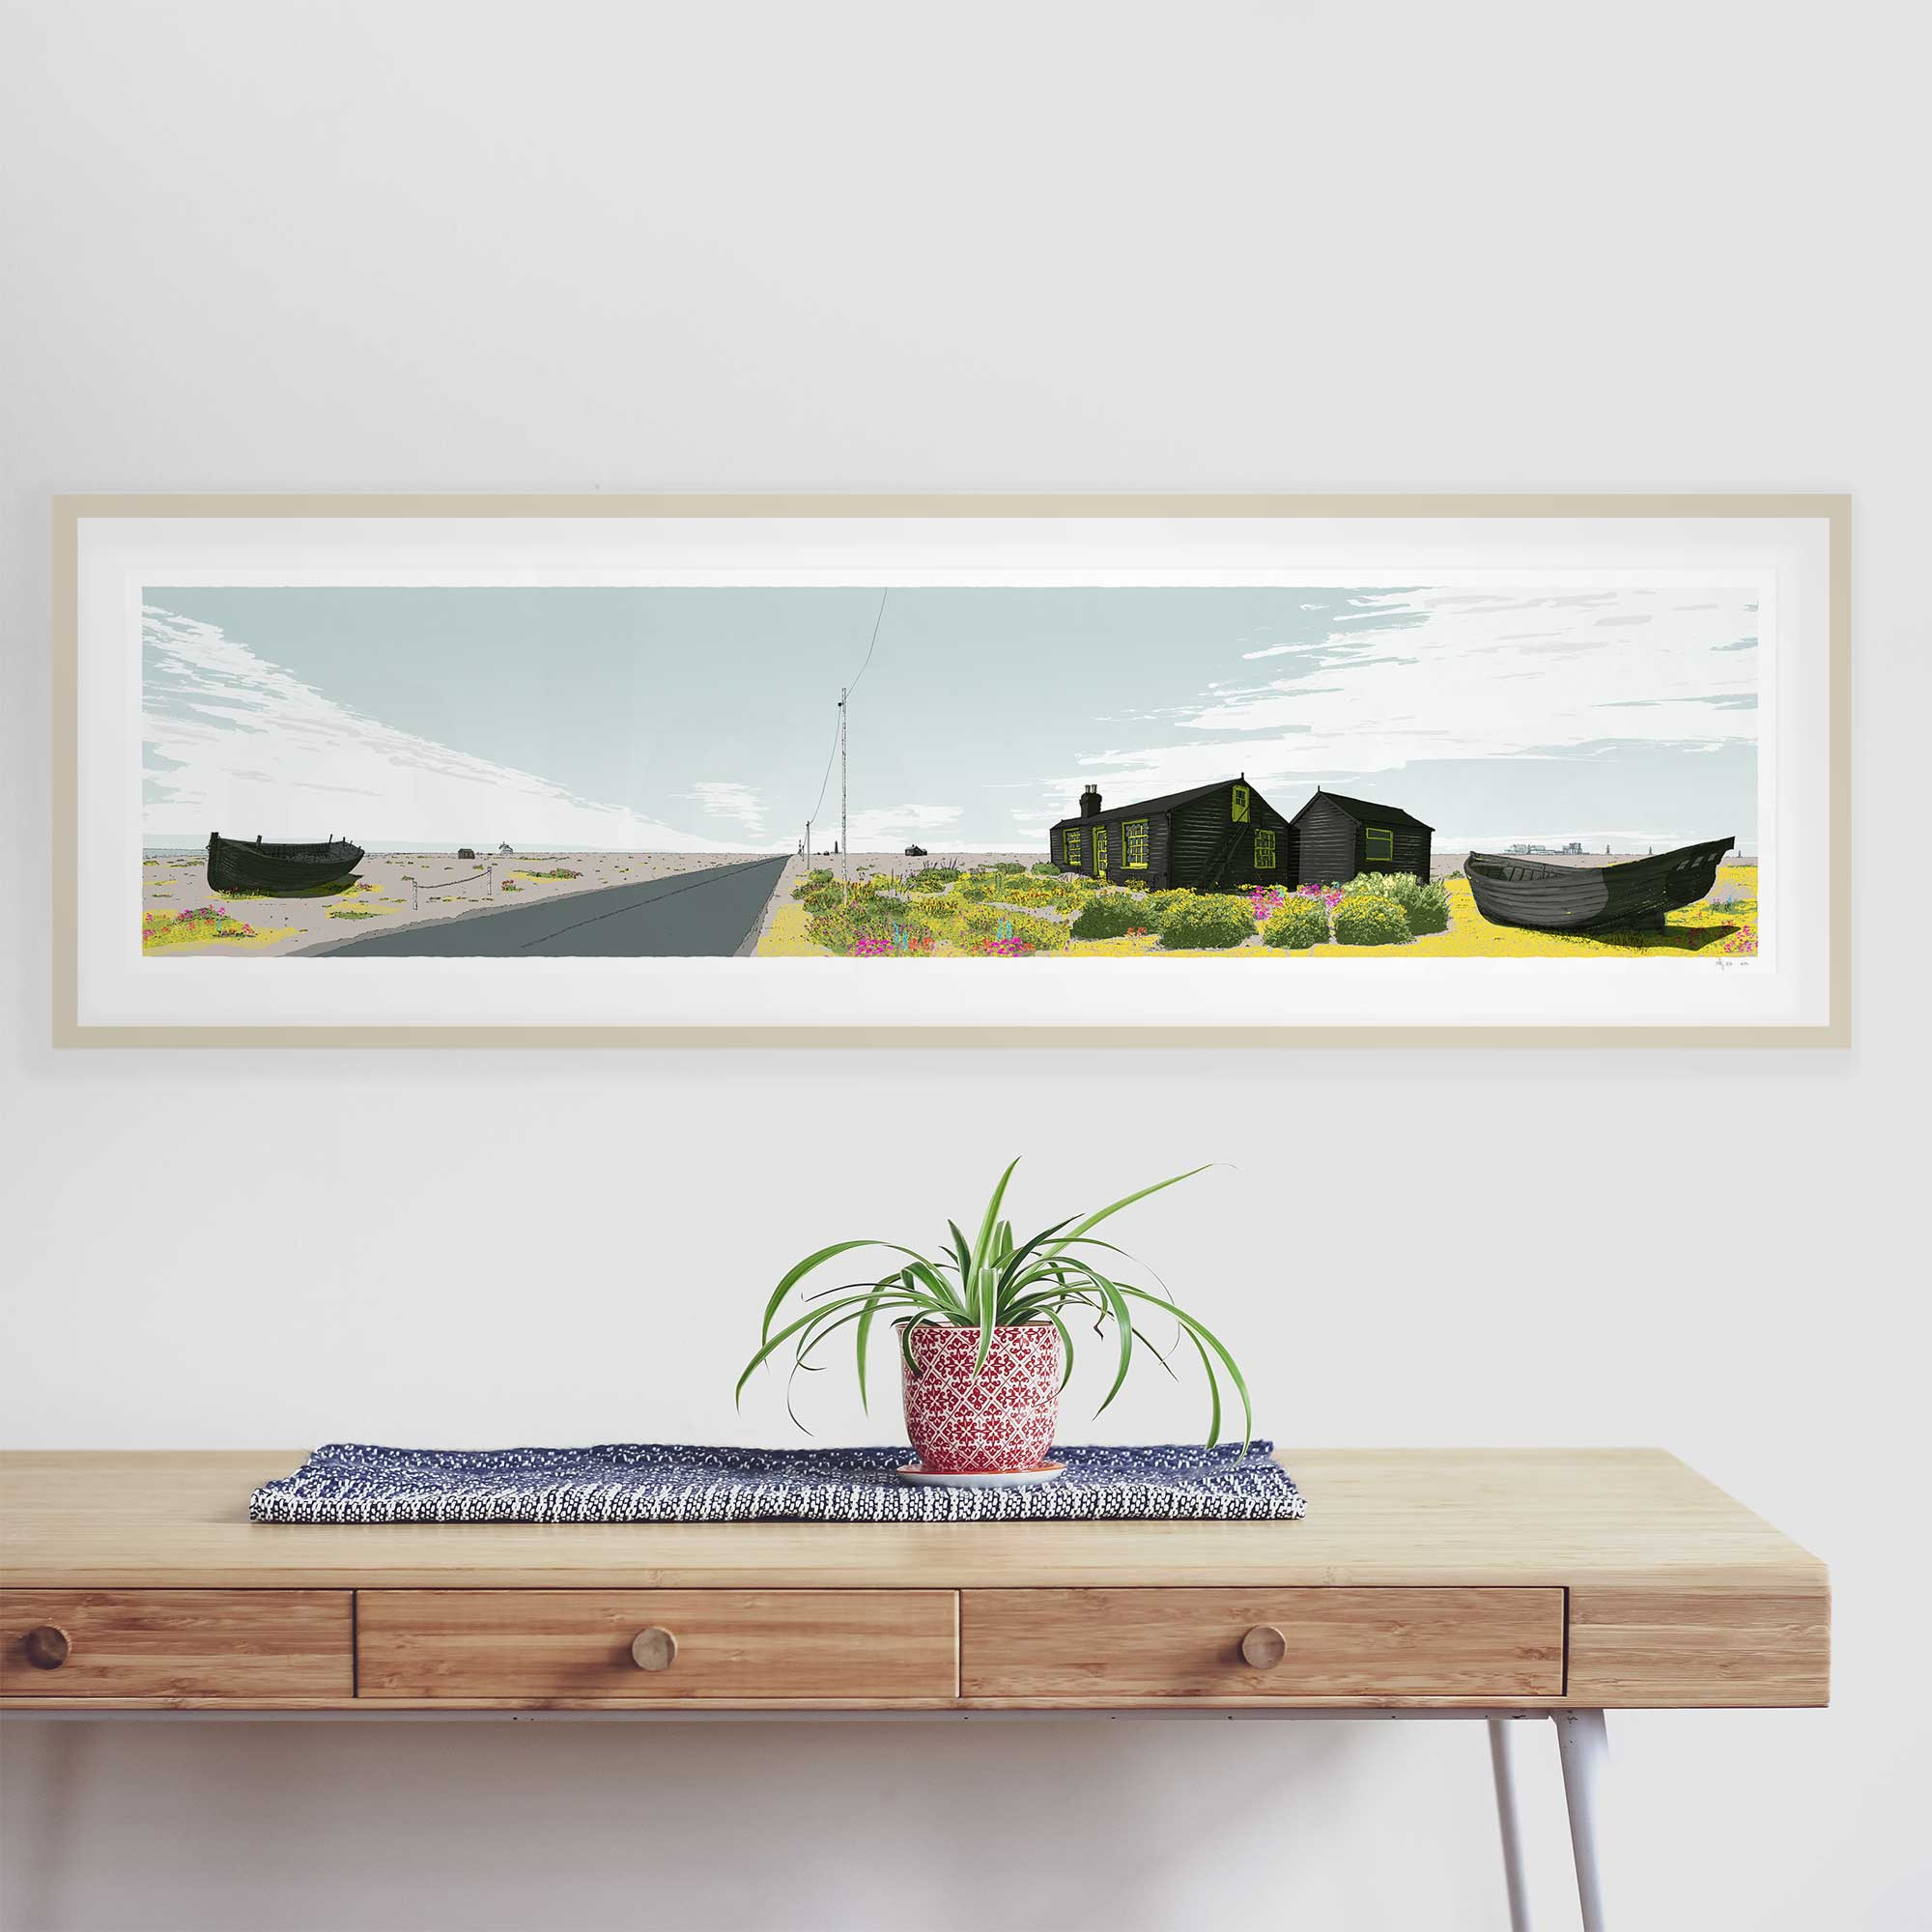 Framed art print by artist alej ez named 'Stratus Over Dungeness Derek Jarman Prospect Cottage'